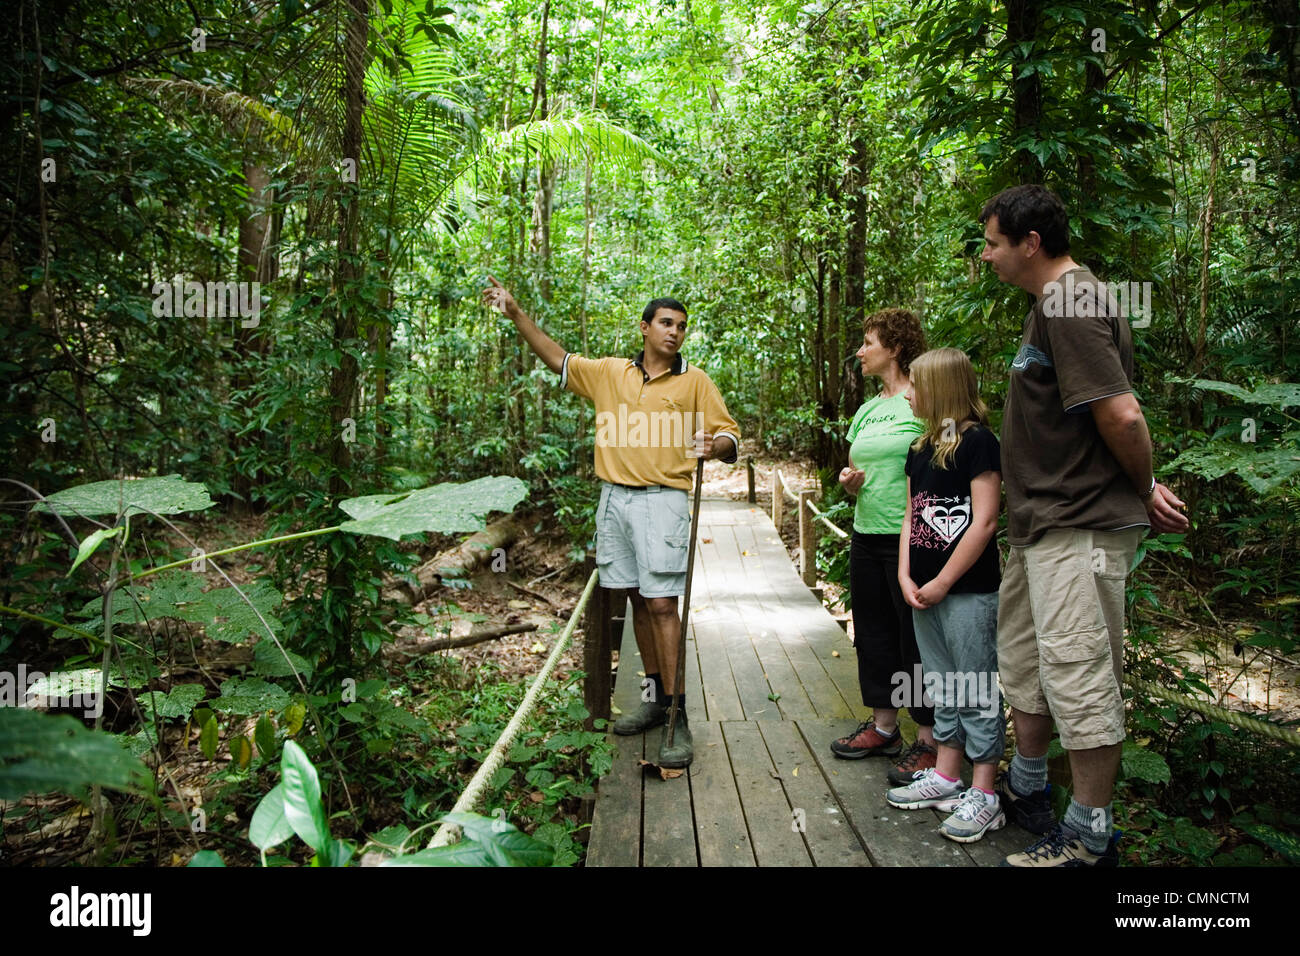 Indigenous Guide And Family On Tour Of Rainforest At Daintree Eco Stock Photo Royalty Free